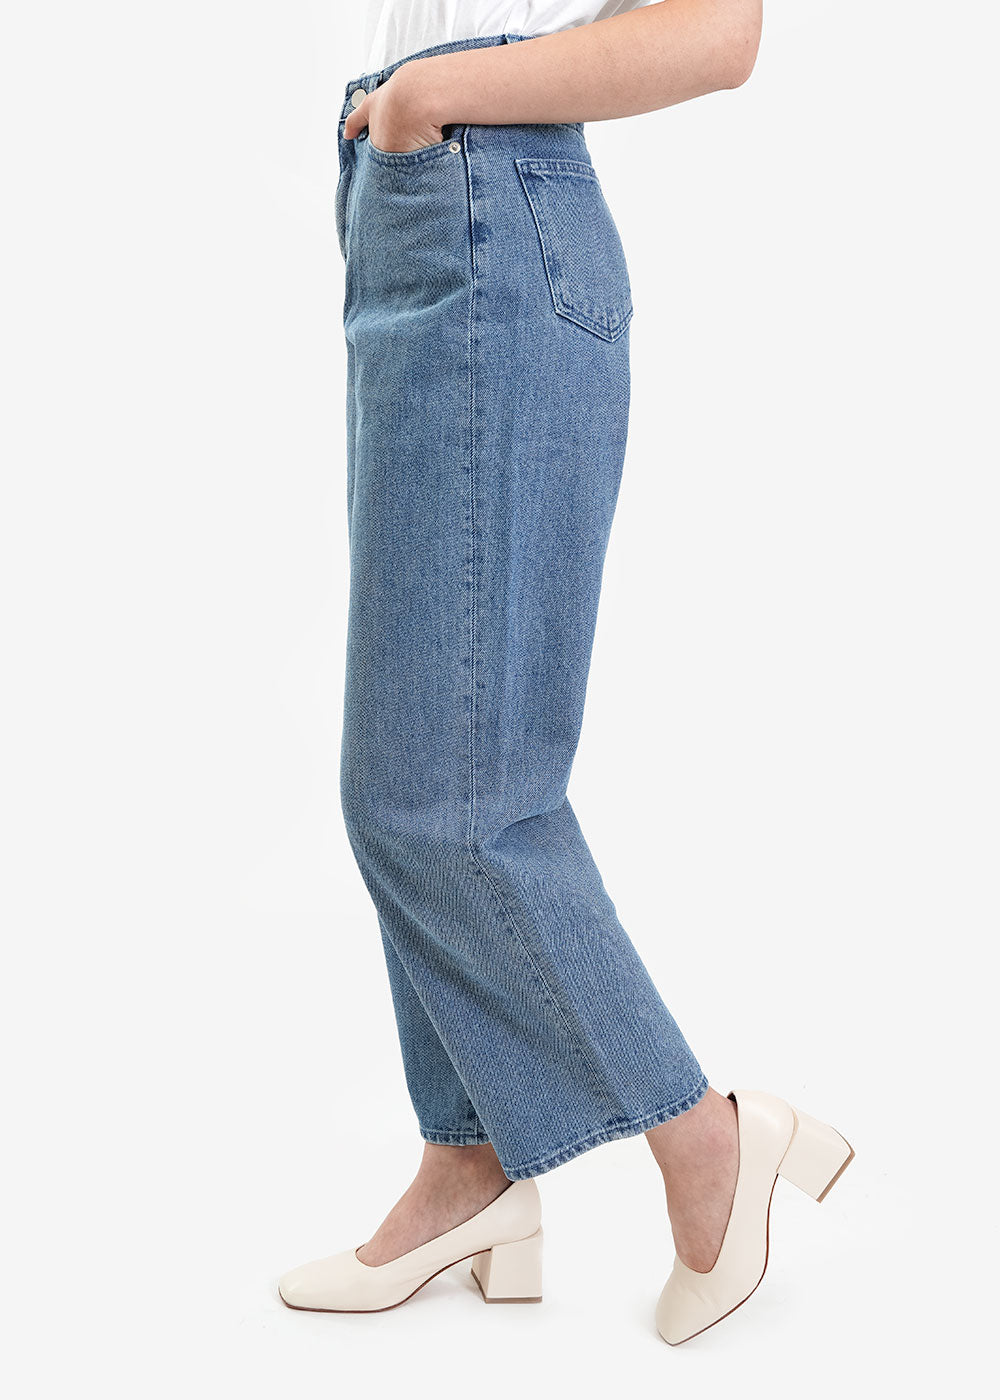 AMOMENTO Wide Fit Denim Jeans — Shop sustainable fashion and slow fashion at New Classics Studios